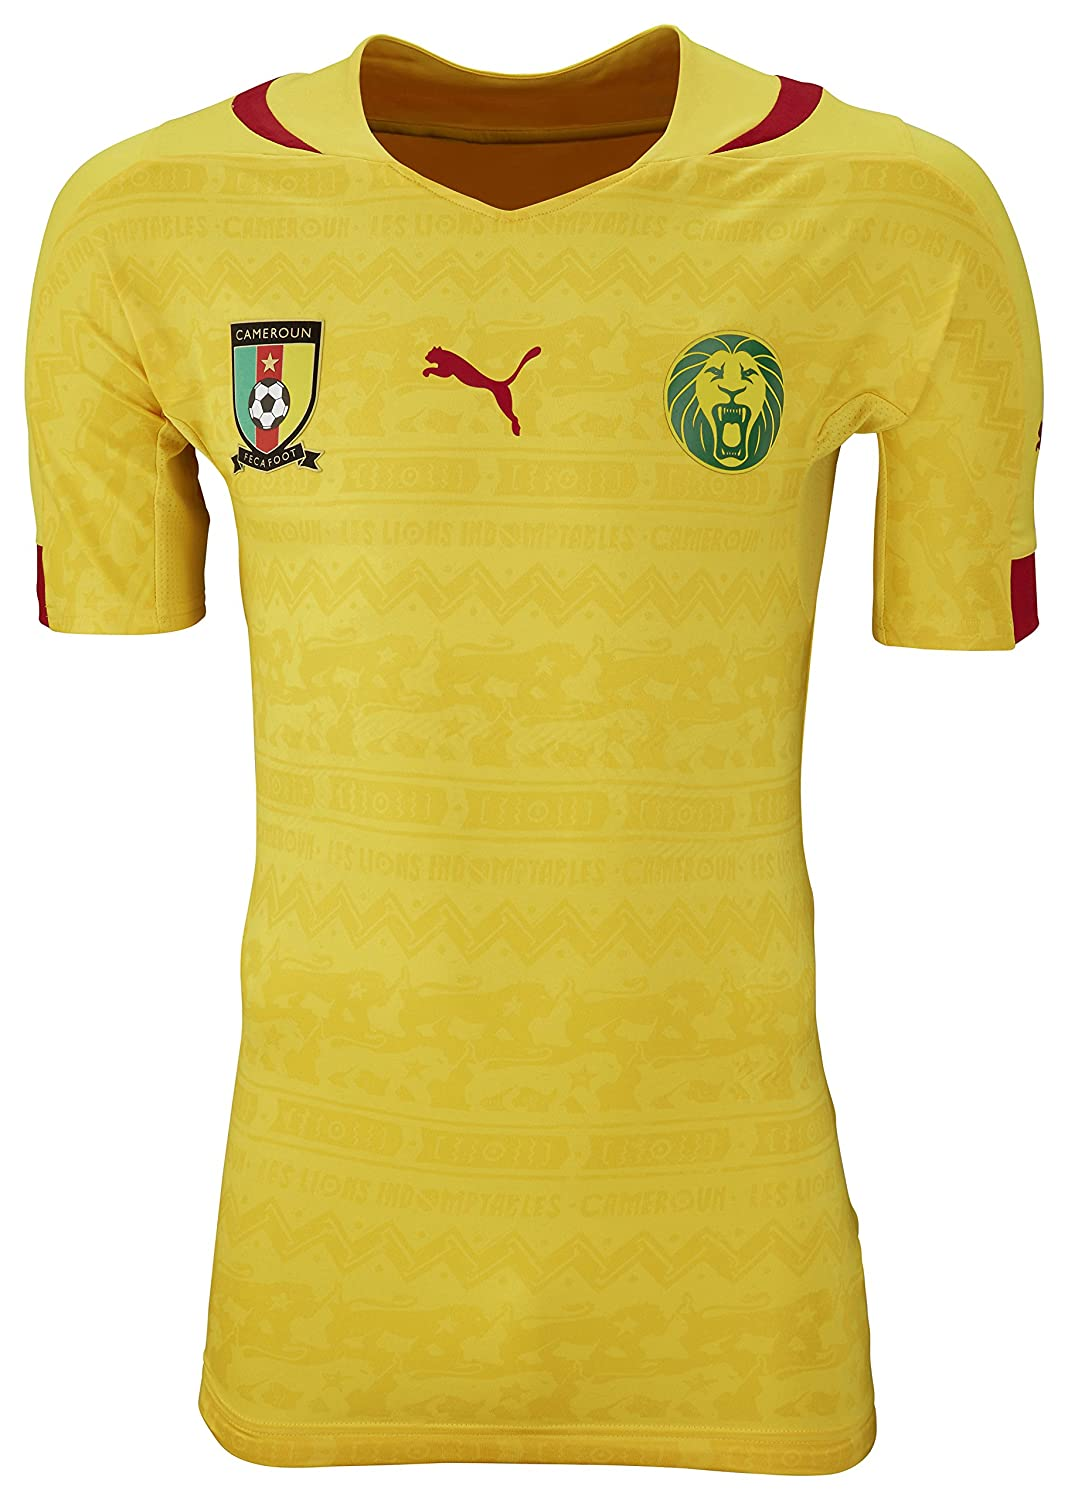 Puma Cameroon Away Jersey World Cup 2014 Yellow